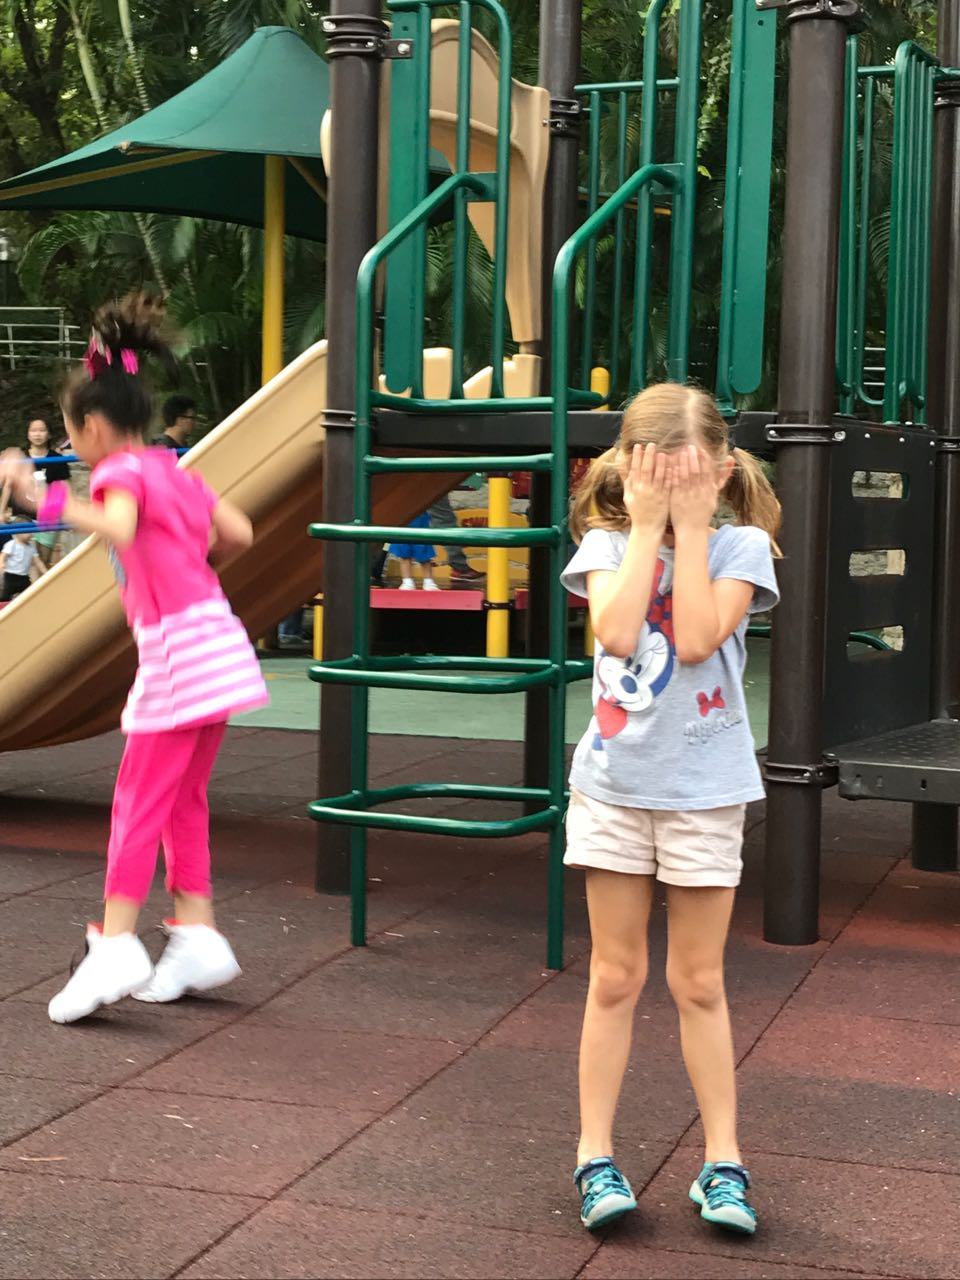 Eden plays hide and seek with a new friend at Kowloon Park in Hong Kong.